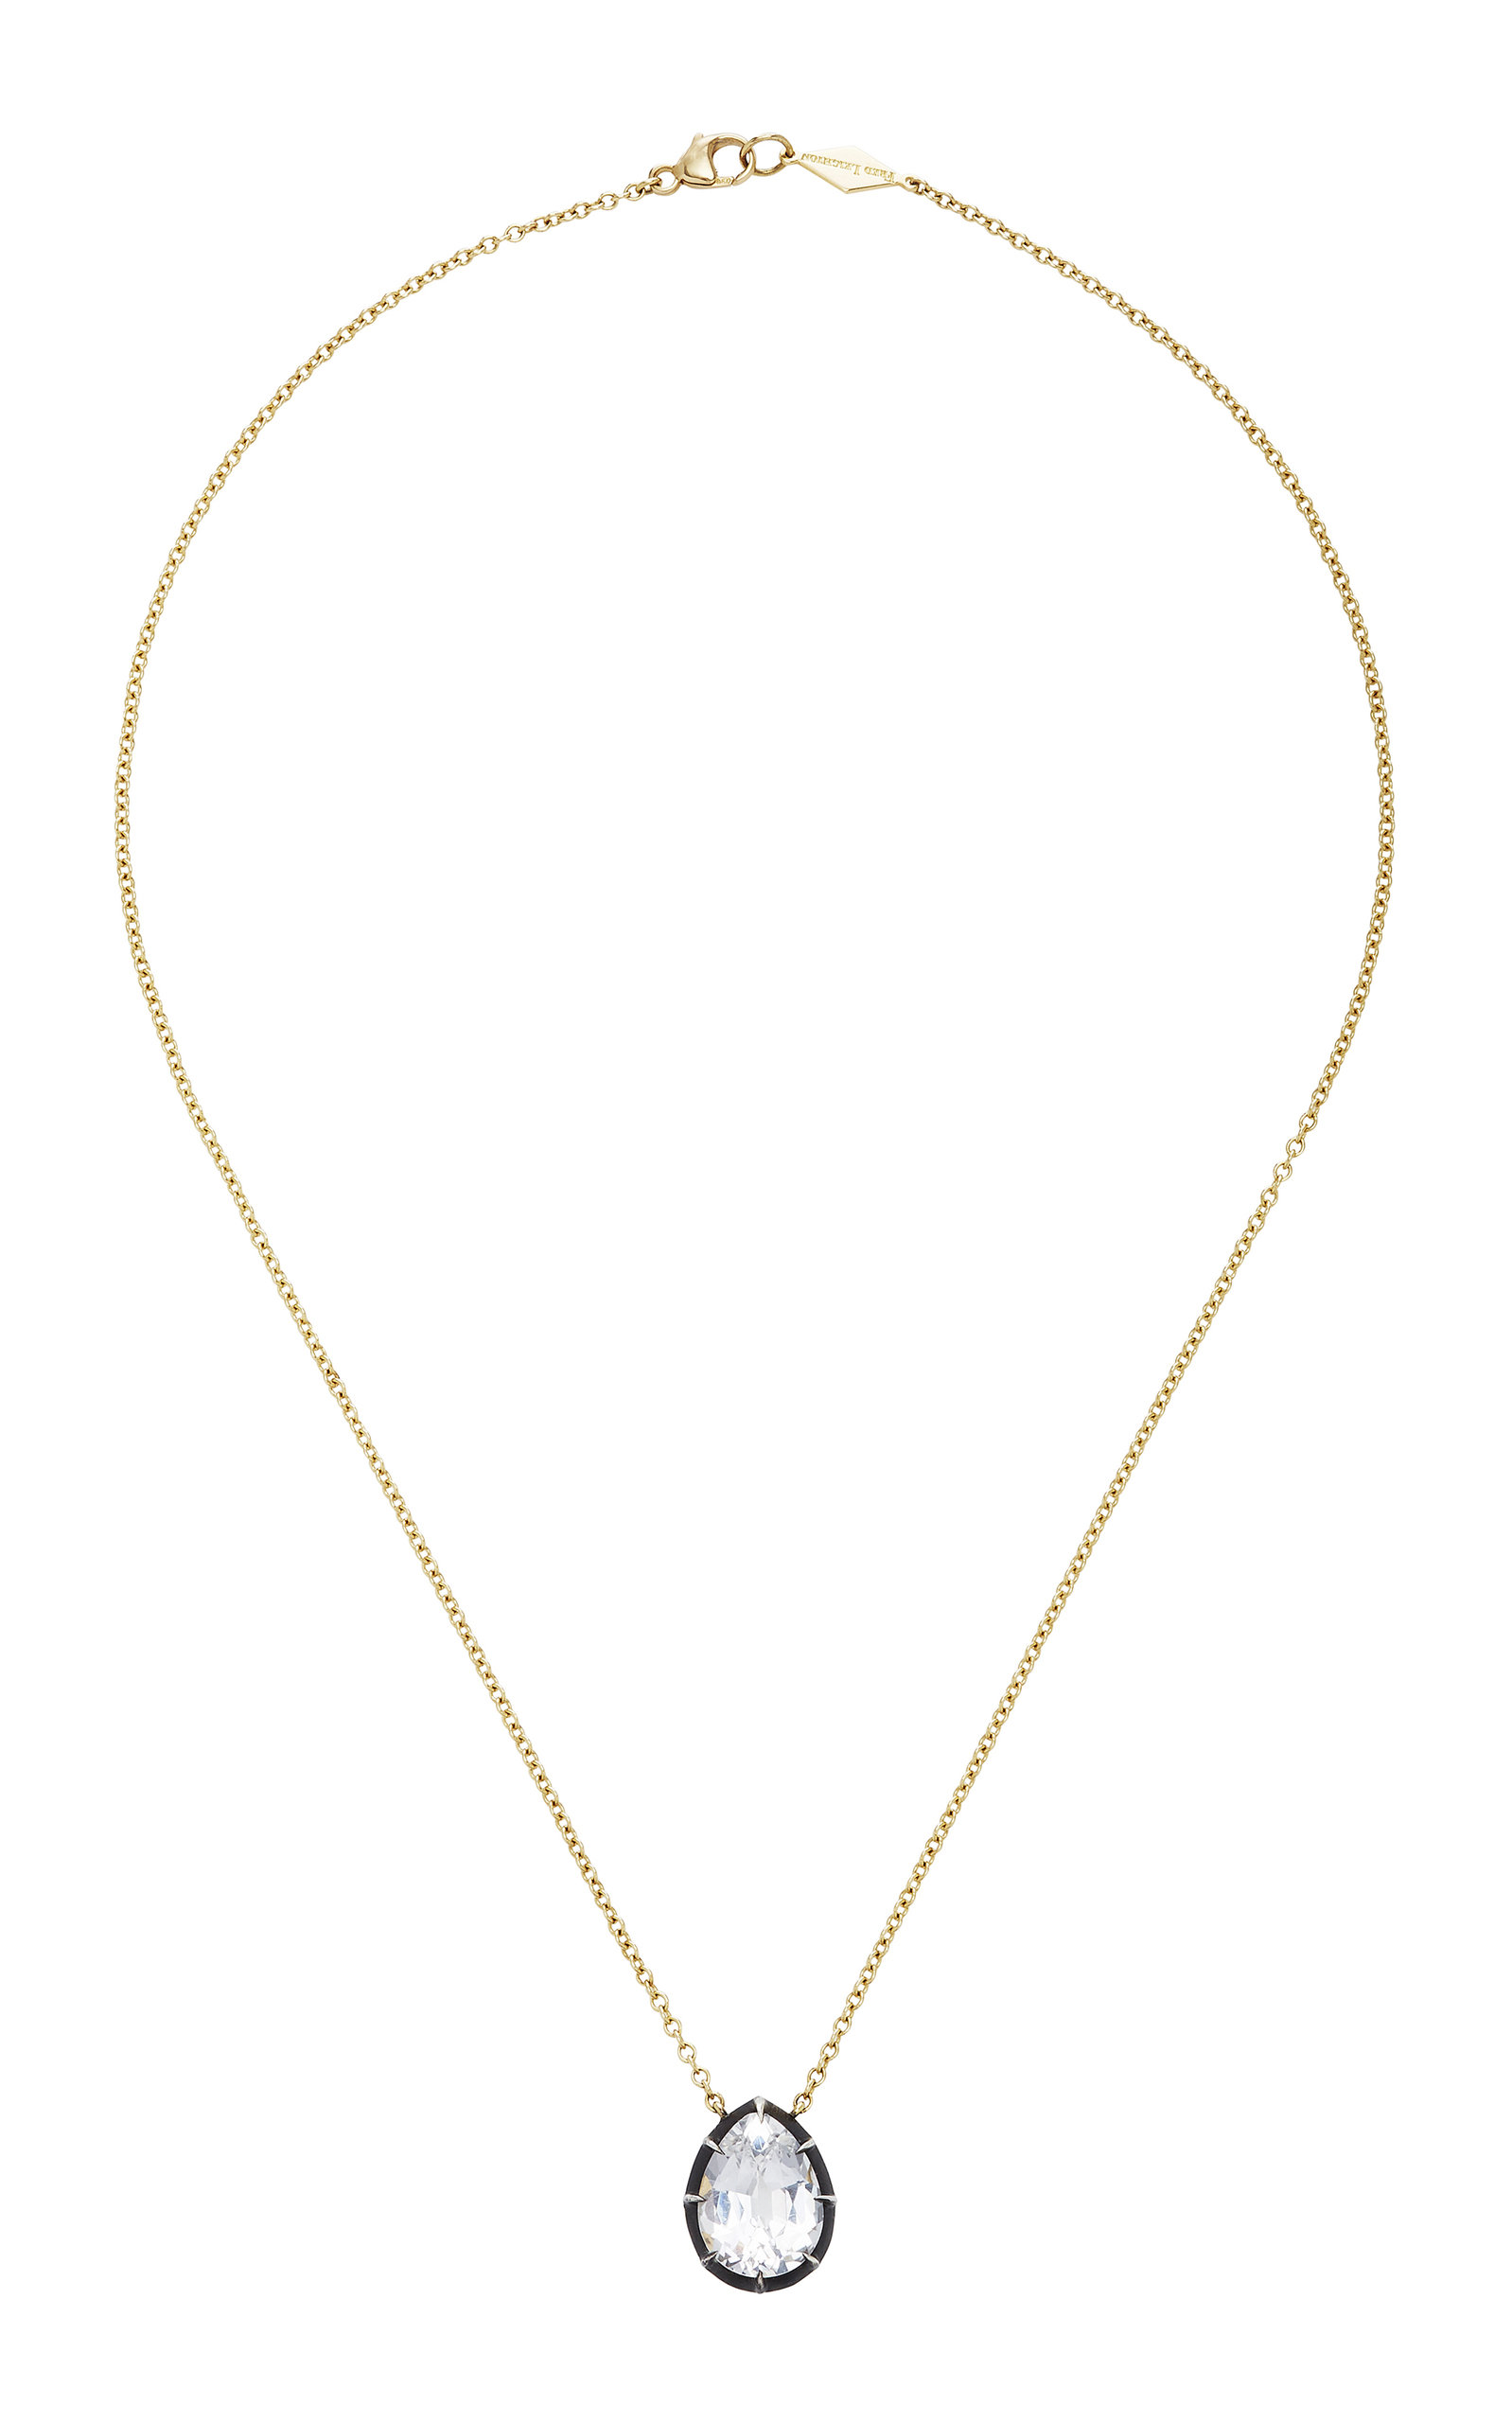 FRED LEIGHTON PEAR SHAPE WHITE TOPAZ COLLET PEANDANT NECKLACE